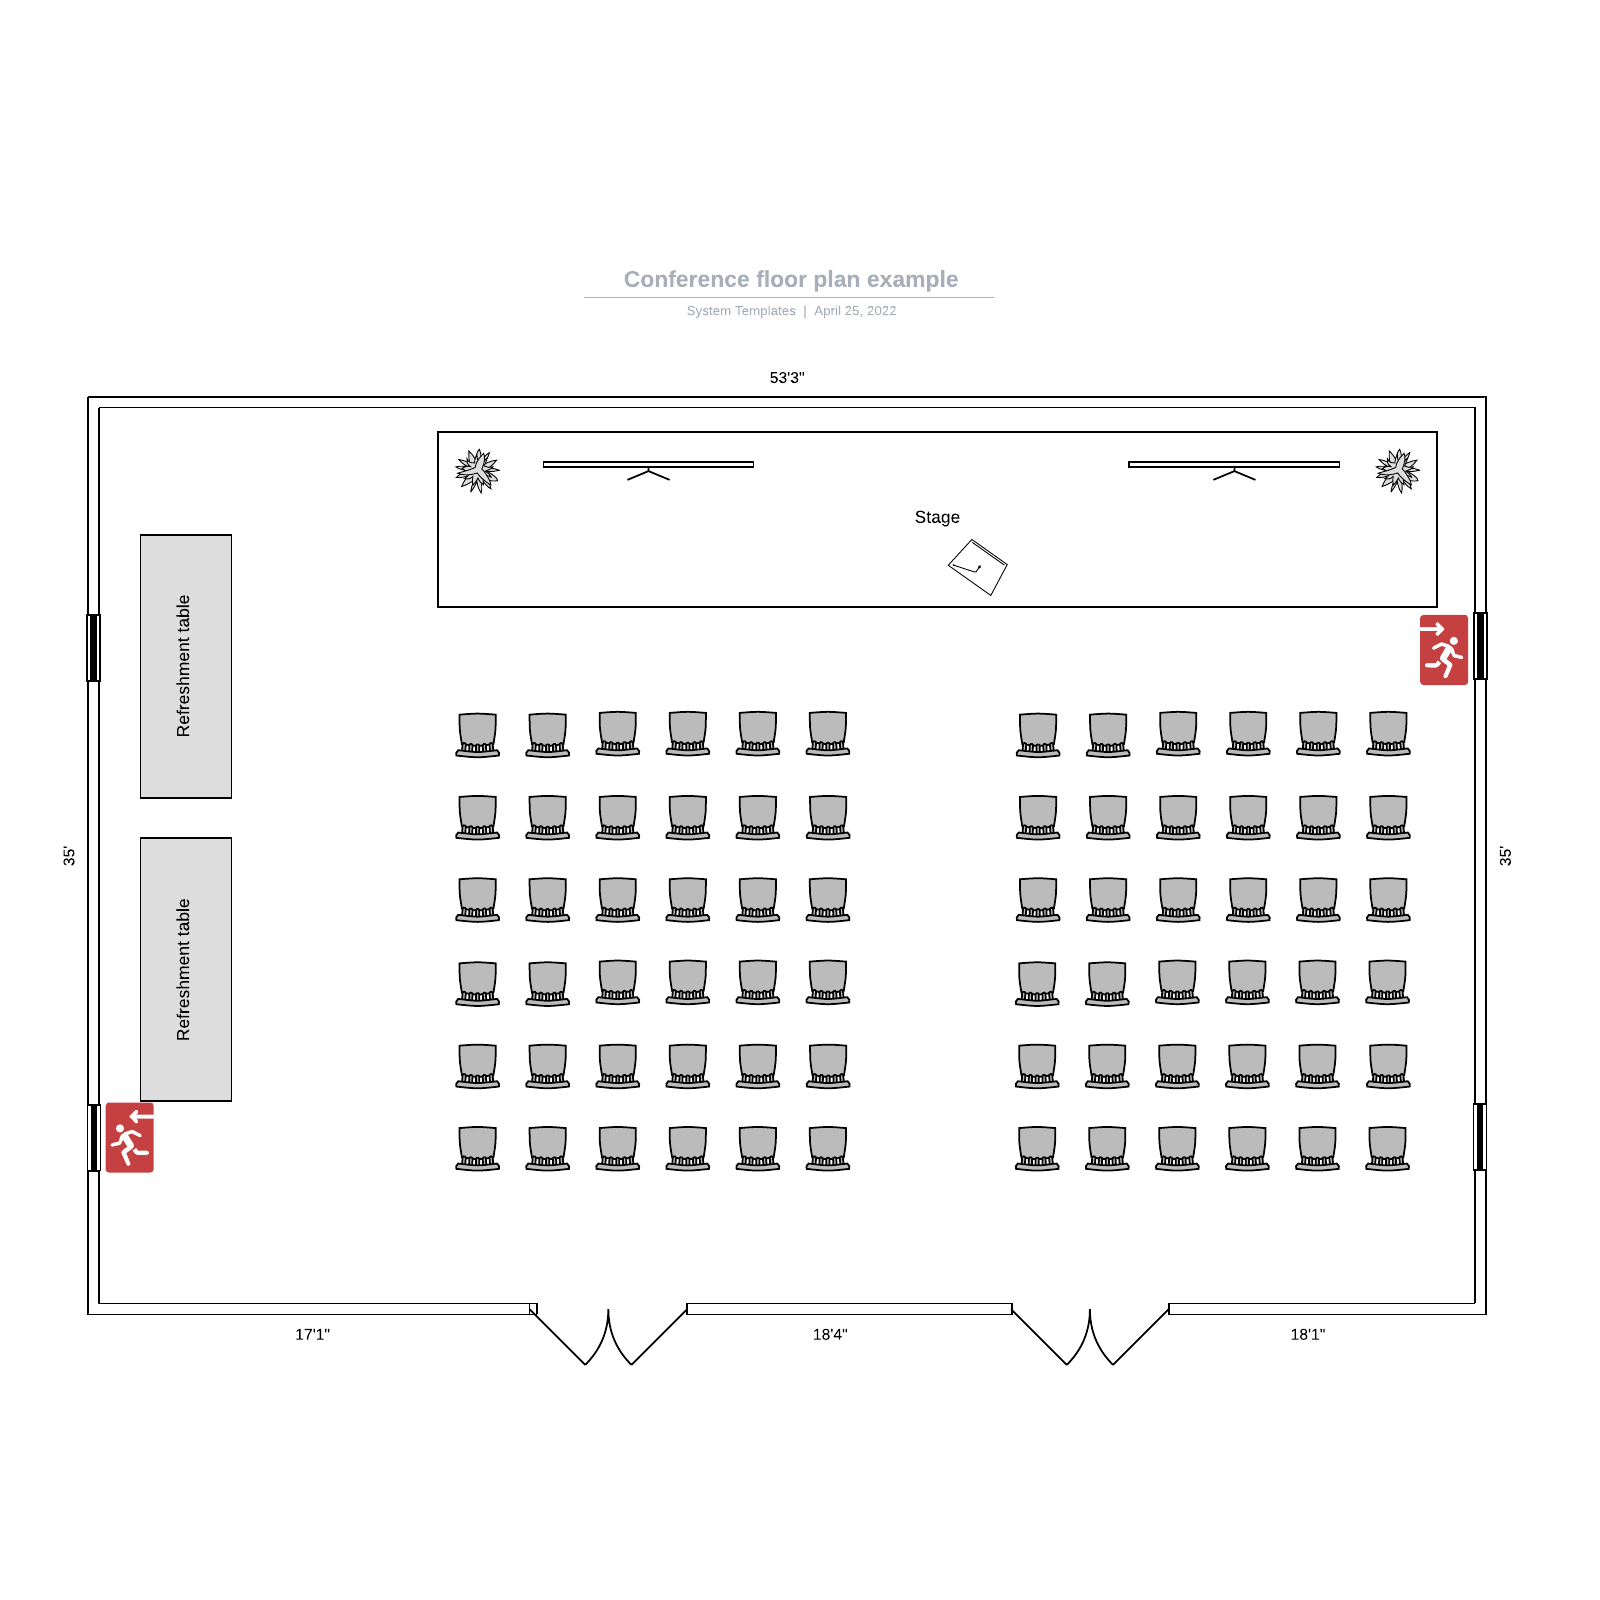 Conference floor plan example